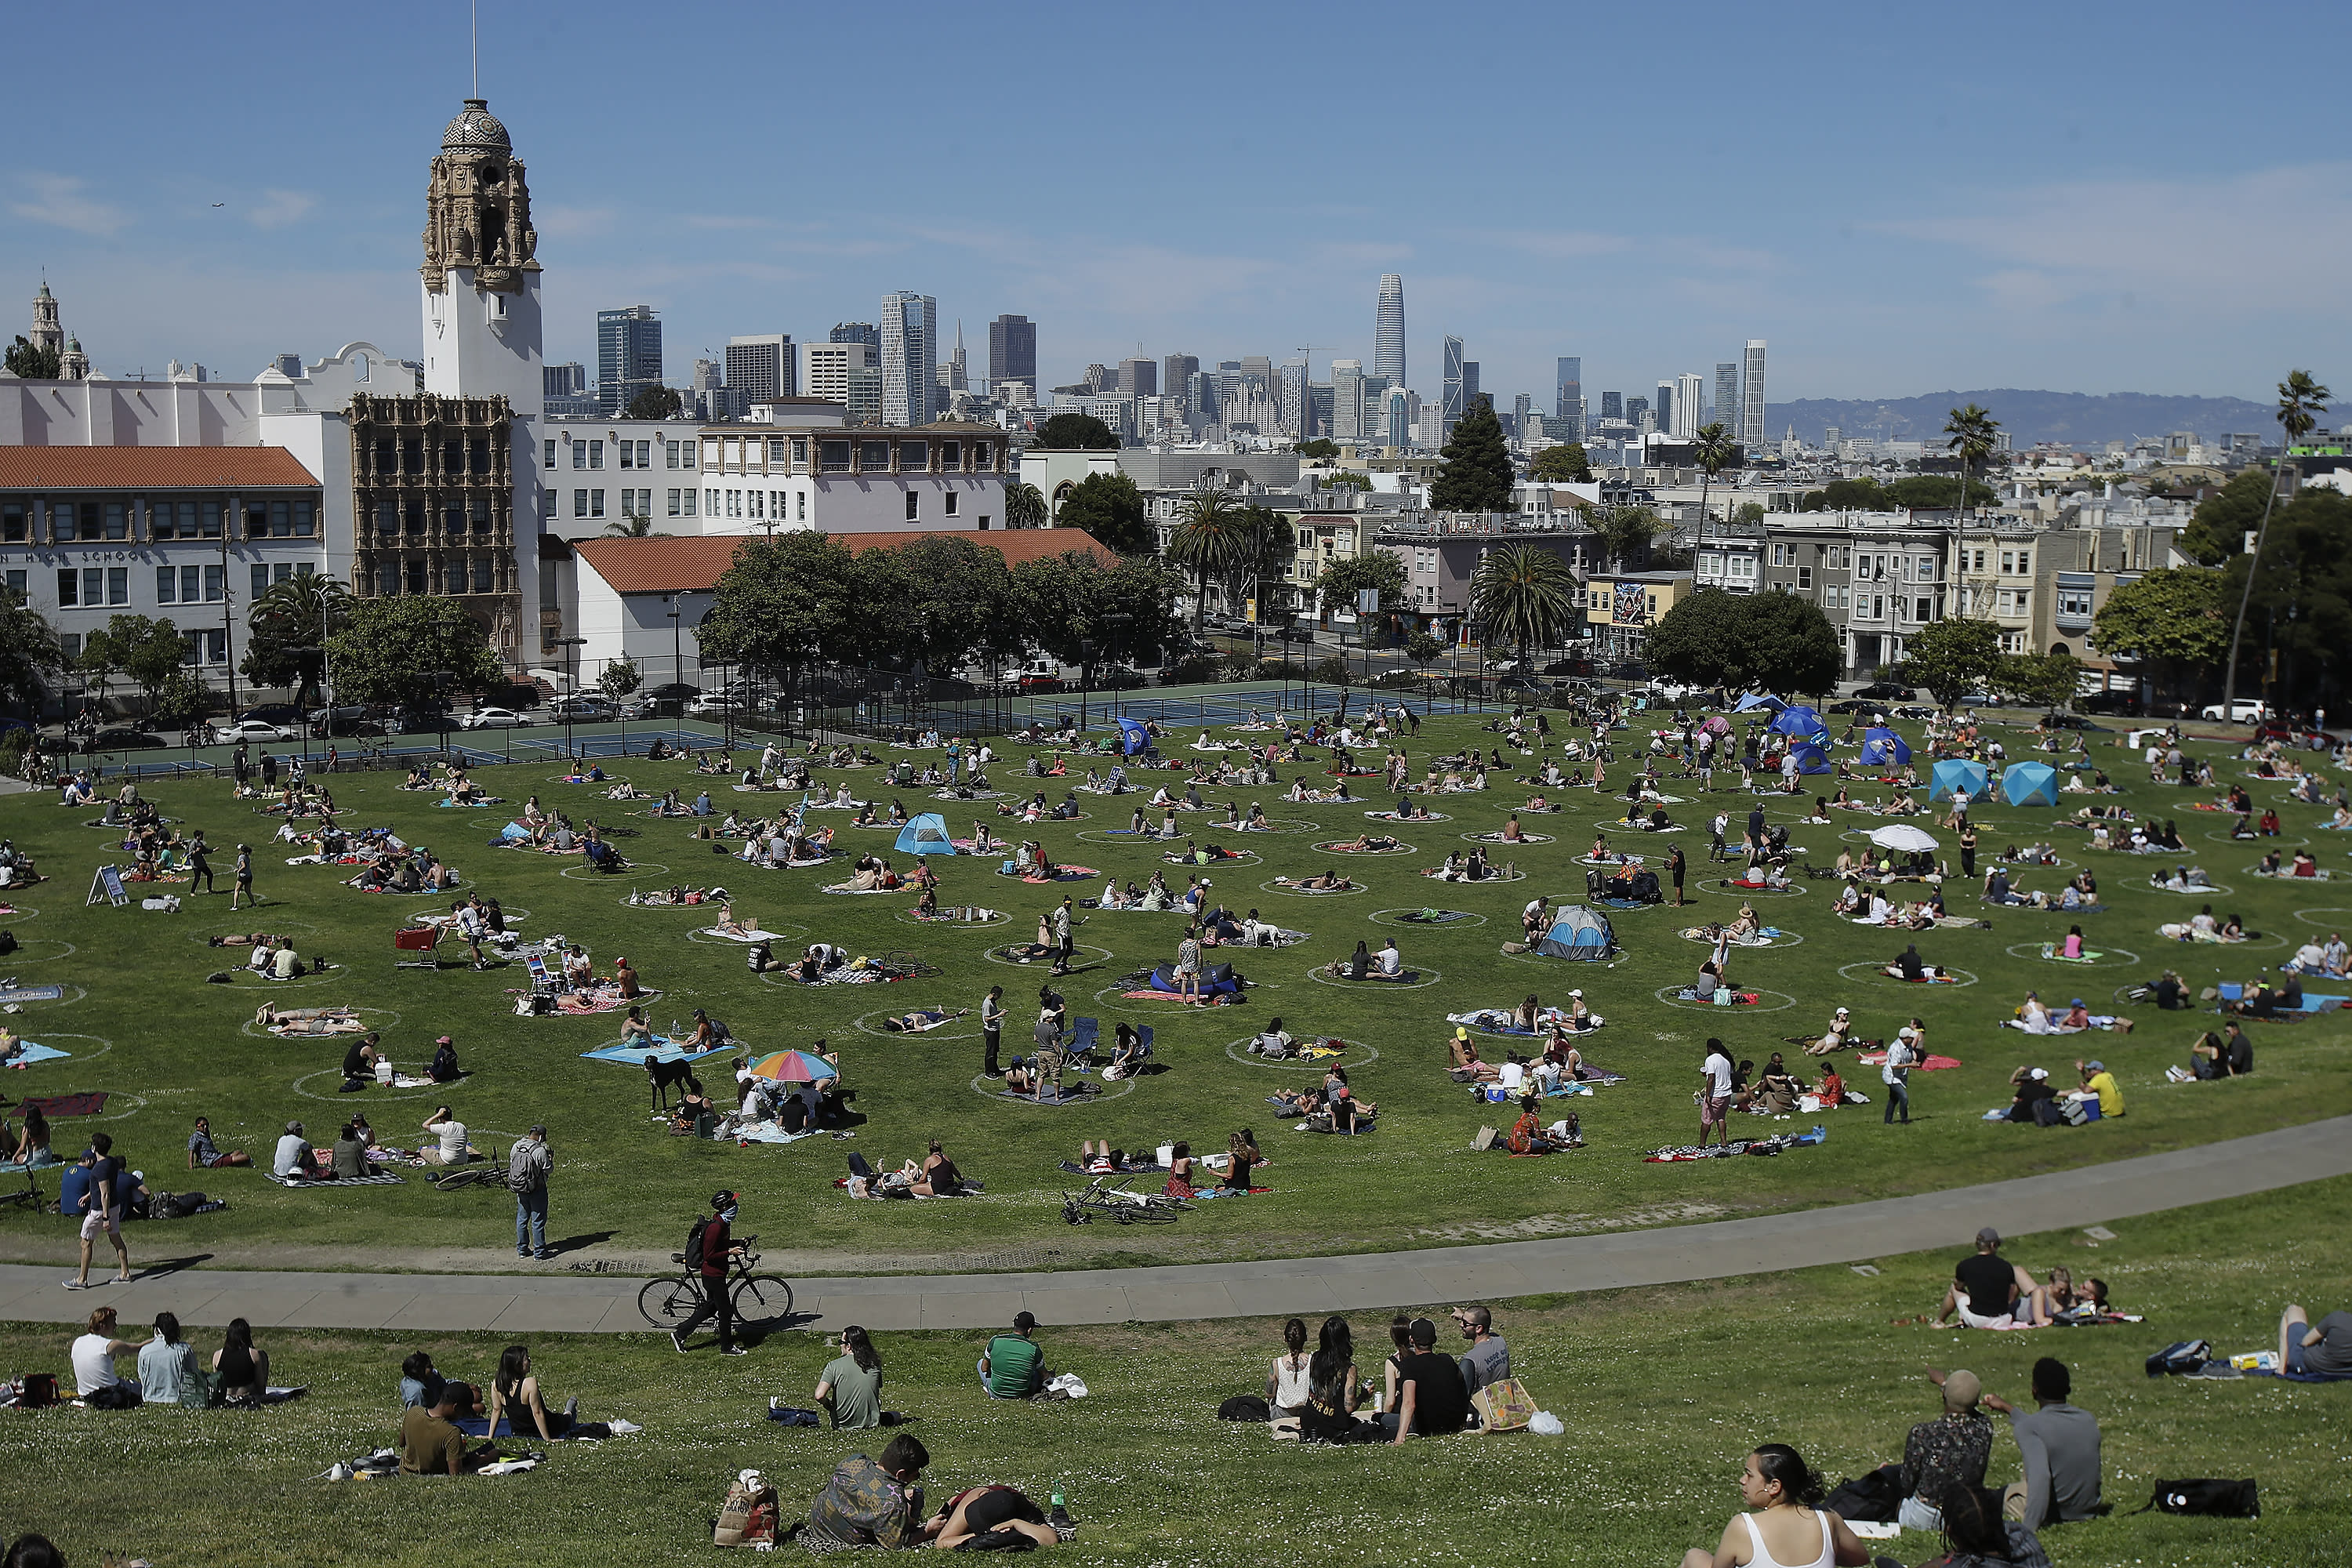 FILE - In this Sunday, May 24, 2020, file photo, visitors set up inside circles designed to help prevent the spread of the coronavirus by encouraging social distancing at Dolores Park in San Francisco. The city said it would continue to delay the reopening of some businesses because of a surge of infections in the city, where the positive case rate per 100,000 has increased to nearly 8%. The goal is to keep it at around 2%, said Dr. Grant Colfax, director of public health. San Francisco's population of nearly 900,000 people has fared remarkably well during the pandemic, with a total of 4,696 cases and 50 deaths, as of Wednesday, July 15, 2020. (AP Photo/Jeff Chiu, File)